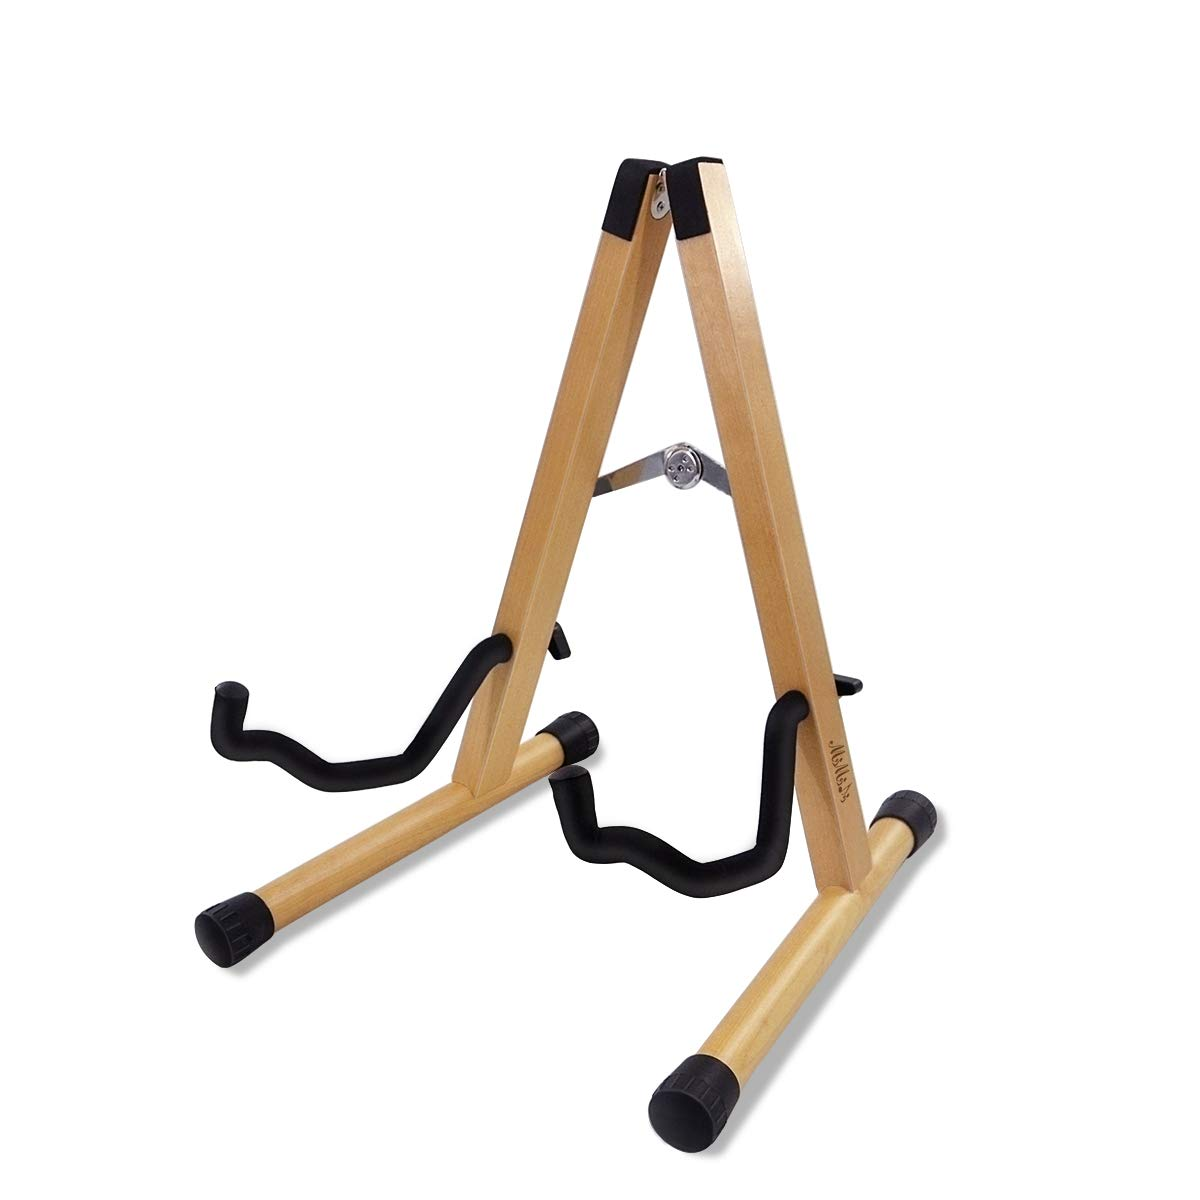 MIMIDI Guitar Stand, Folding Guitar Stand A-frame Portable Classical Guitar Stand Electric Guitar Stand (organic colour)